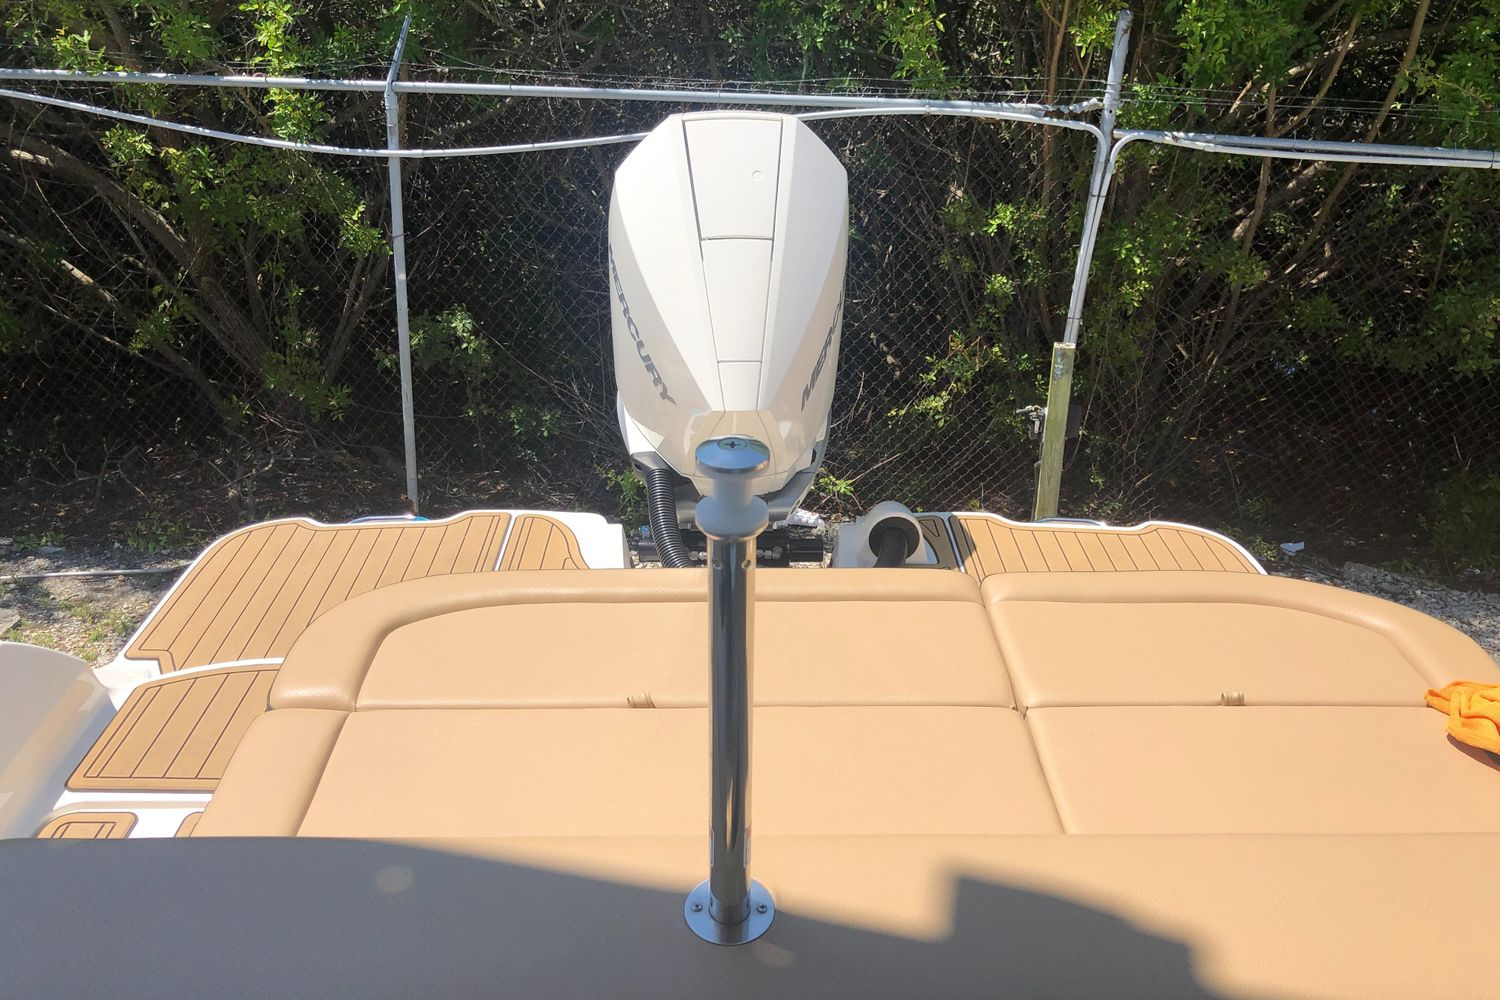 2019 Sea Ray                                                              SDX 270 Outboard Image Thumbnail #11